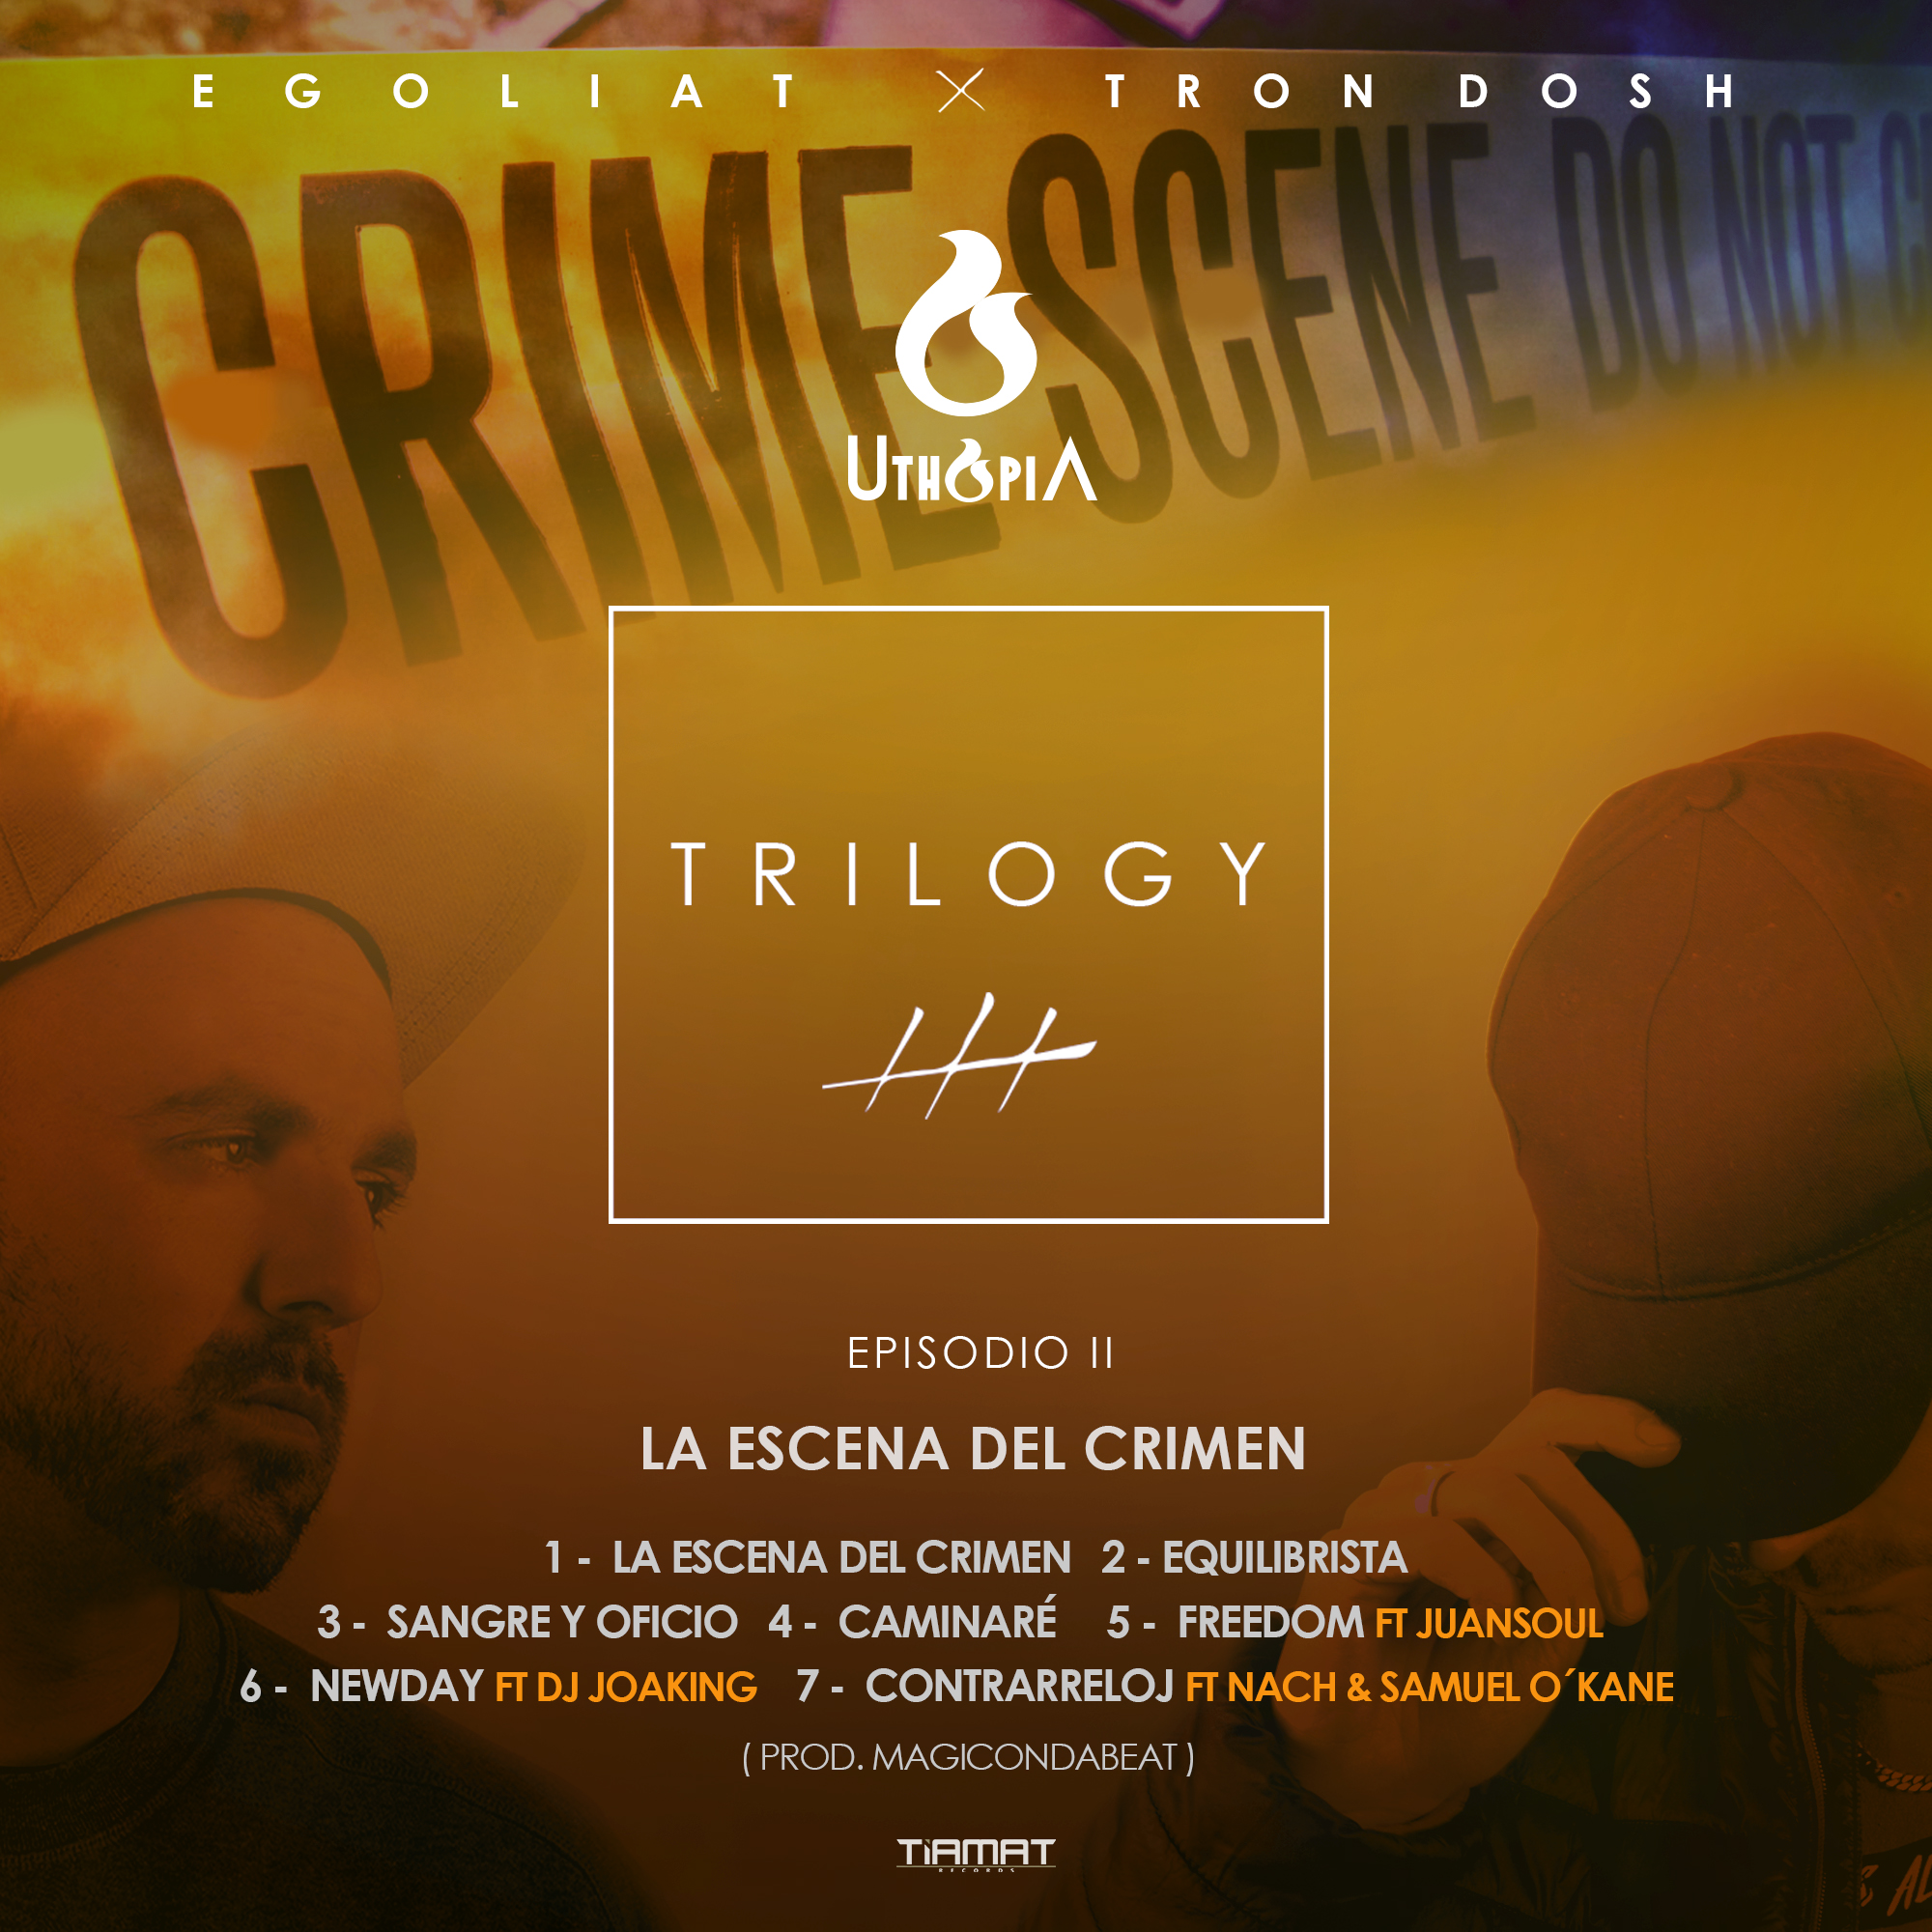 Trilogy_episodio_2